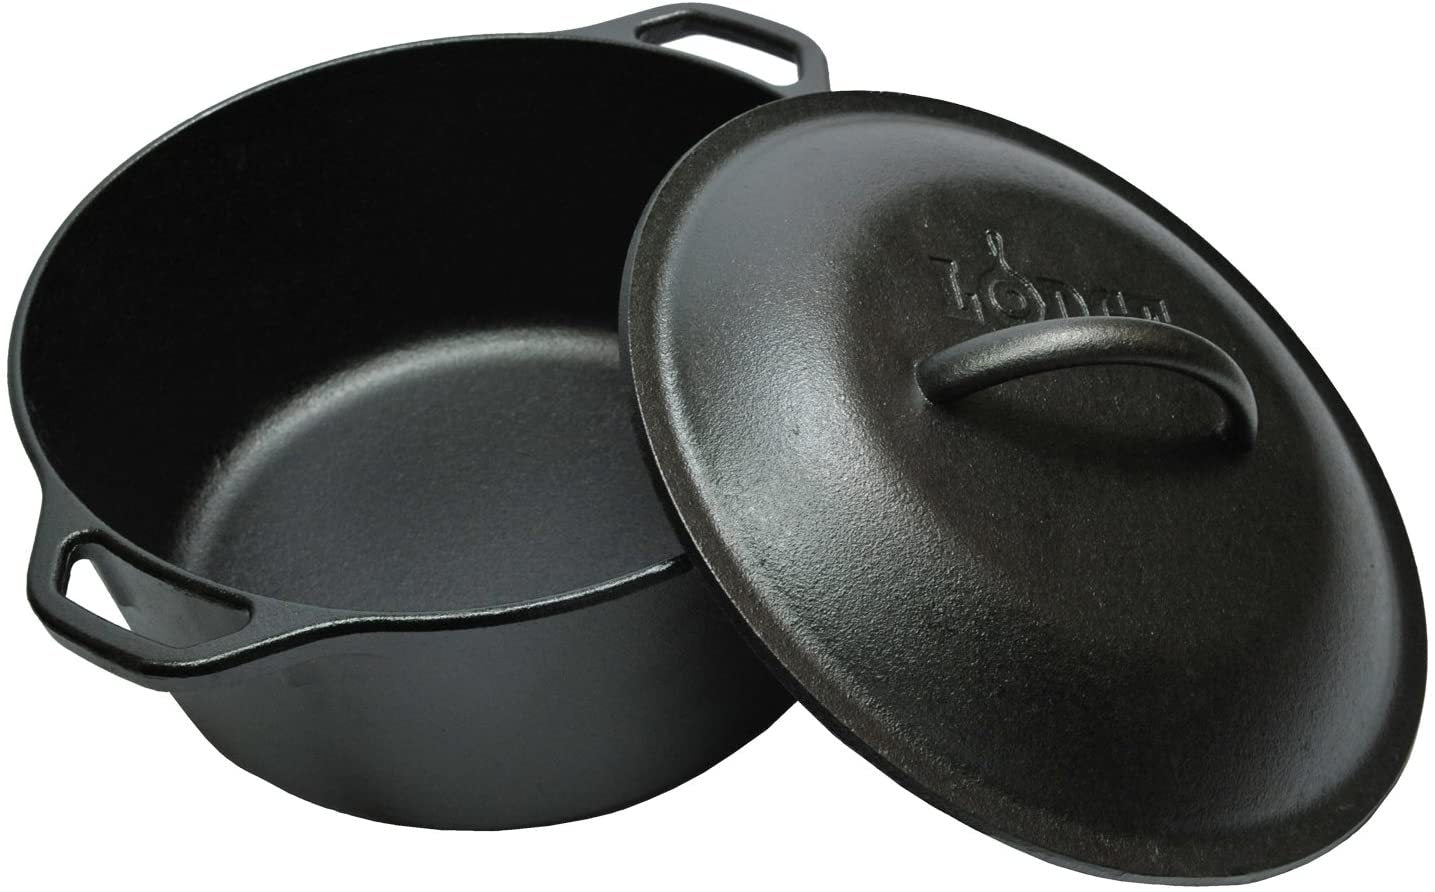 LODGE PRE-SEASONED CAST IRON DUTCH OVEN 5 QUART (4.73 LITERS) - Mabrook Hotel Supplies